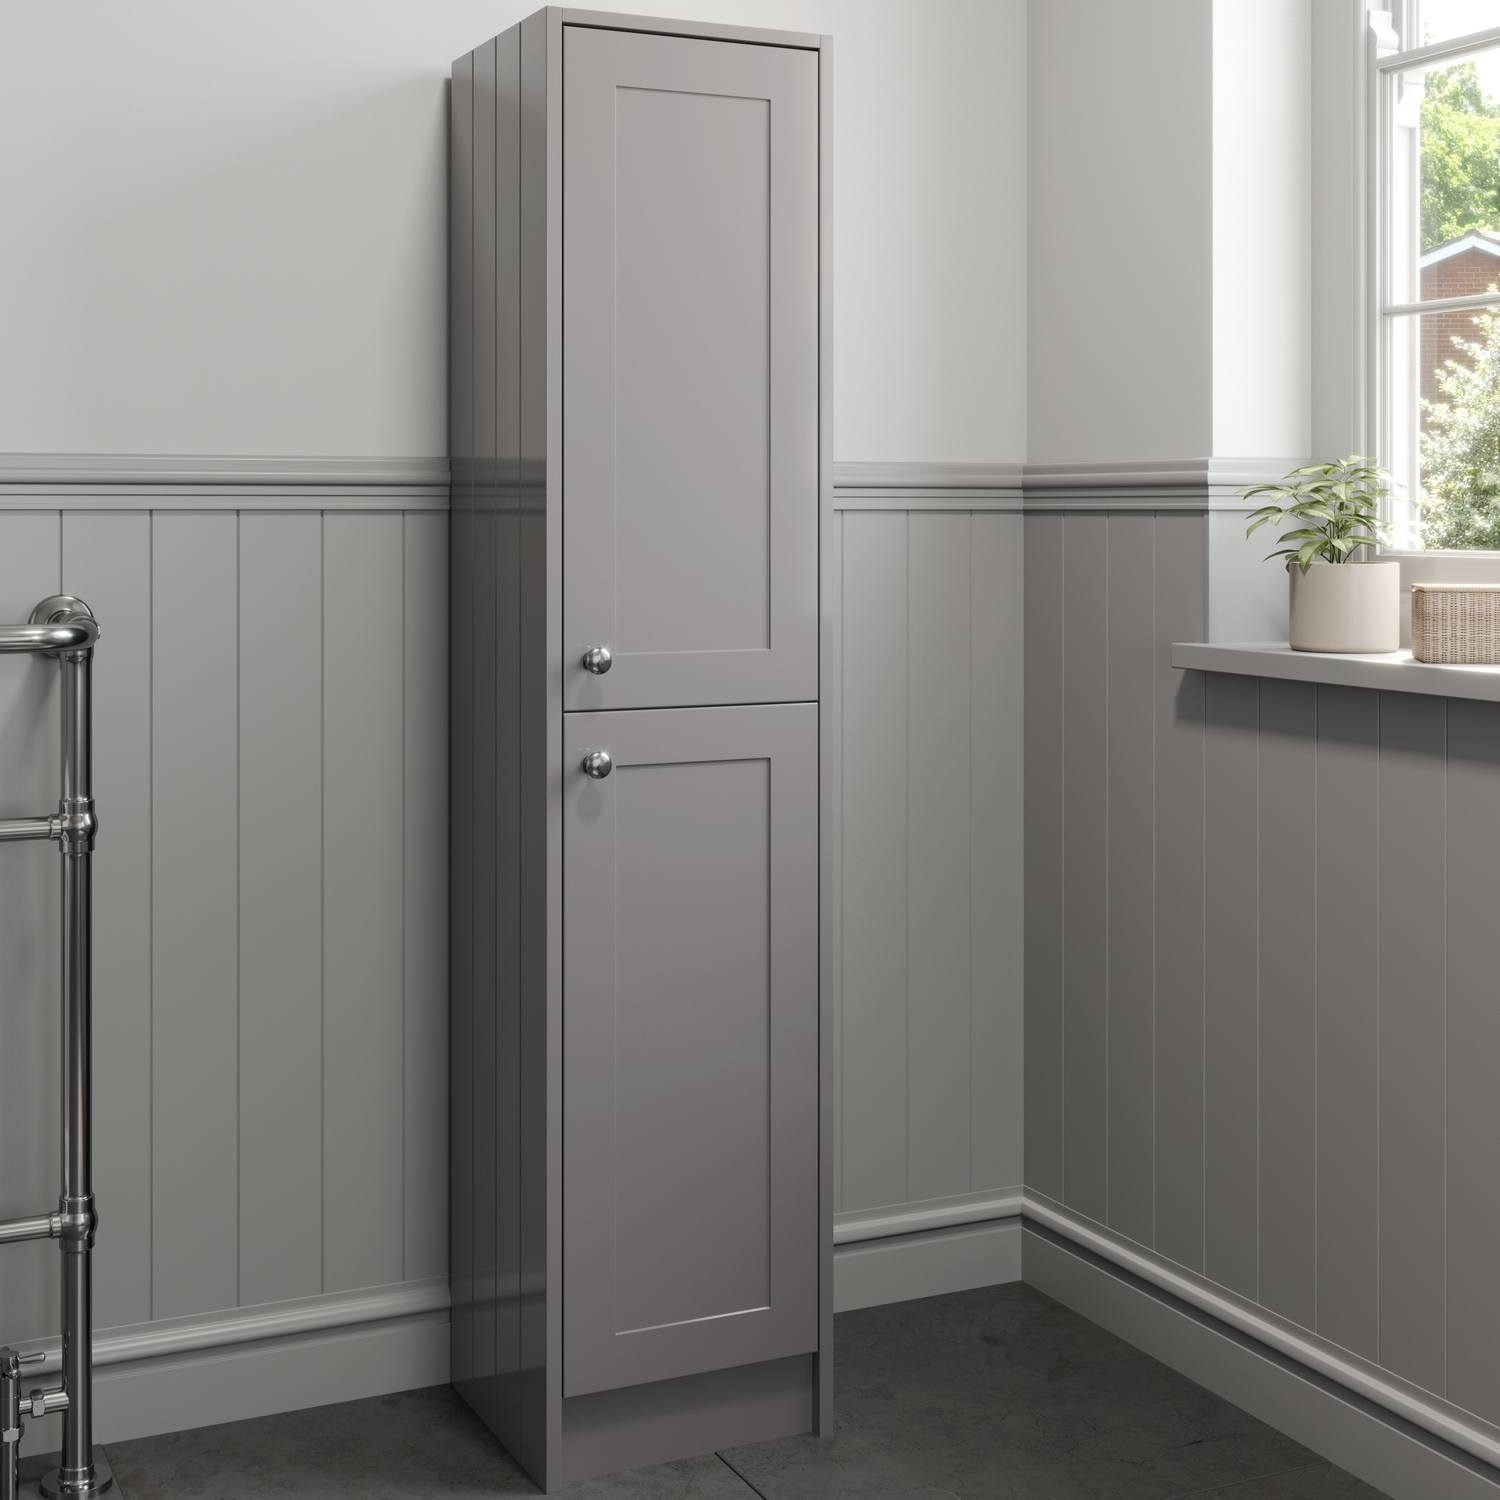 Details About 1600mm Tall Bathroom Storage Cabinet Cupboard Floorstanding Grey Traditional within proportions 1500 X 1500